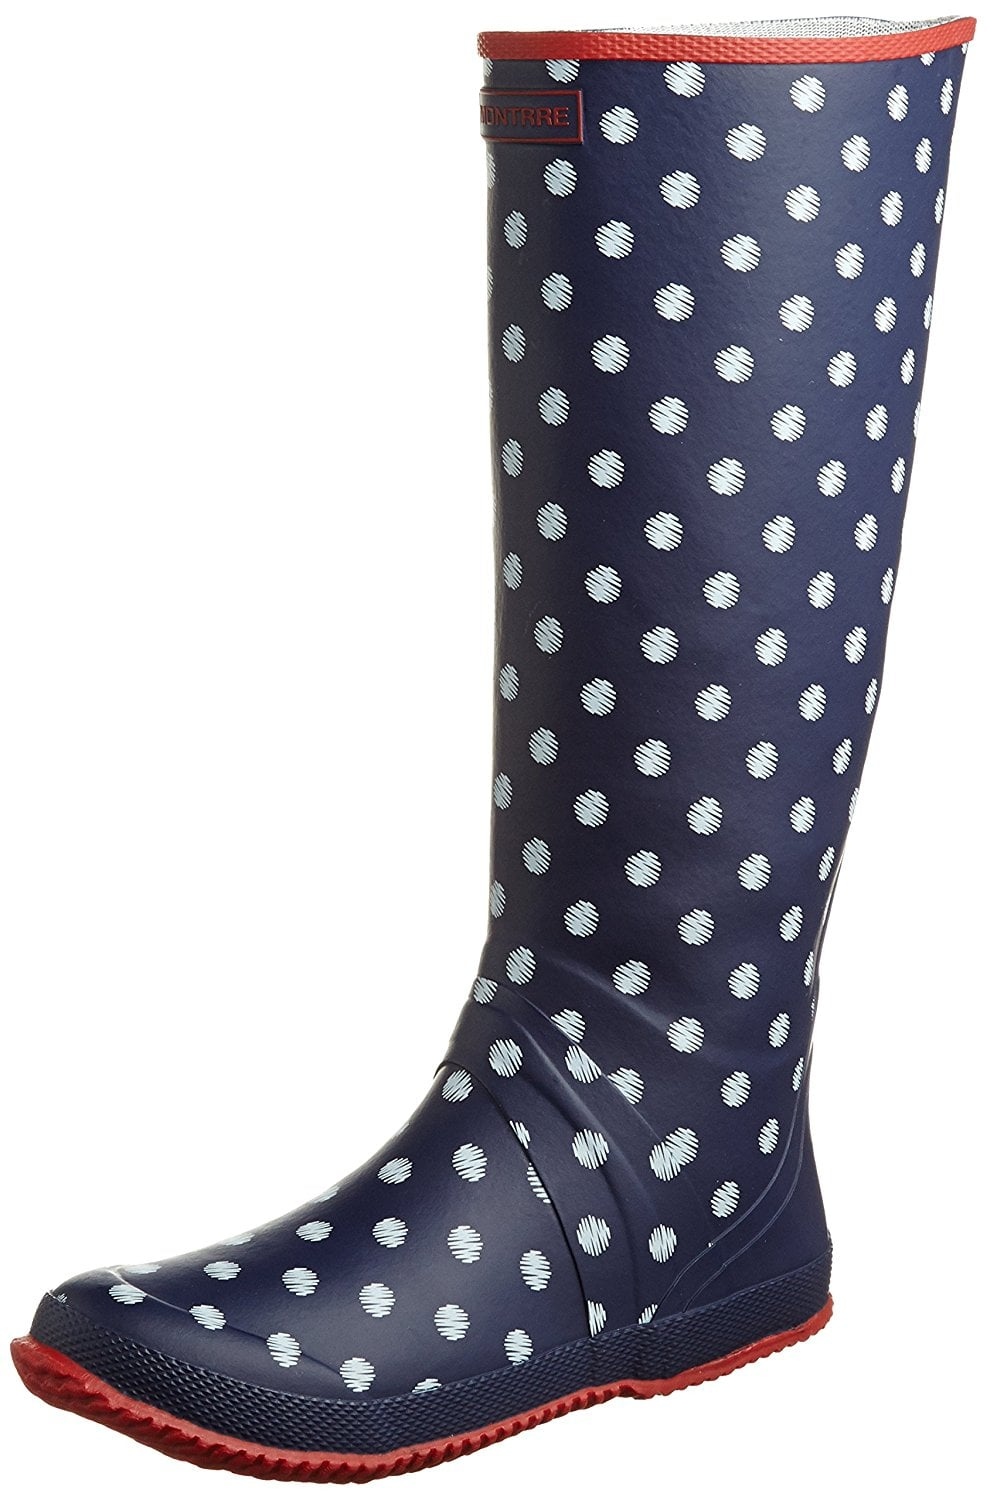 Montree Rainboots 01